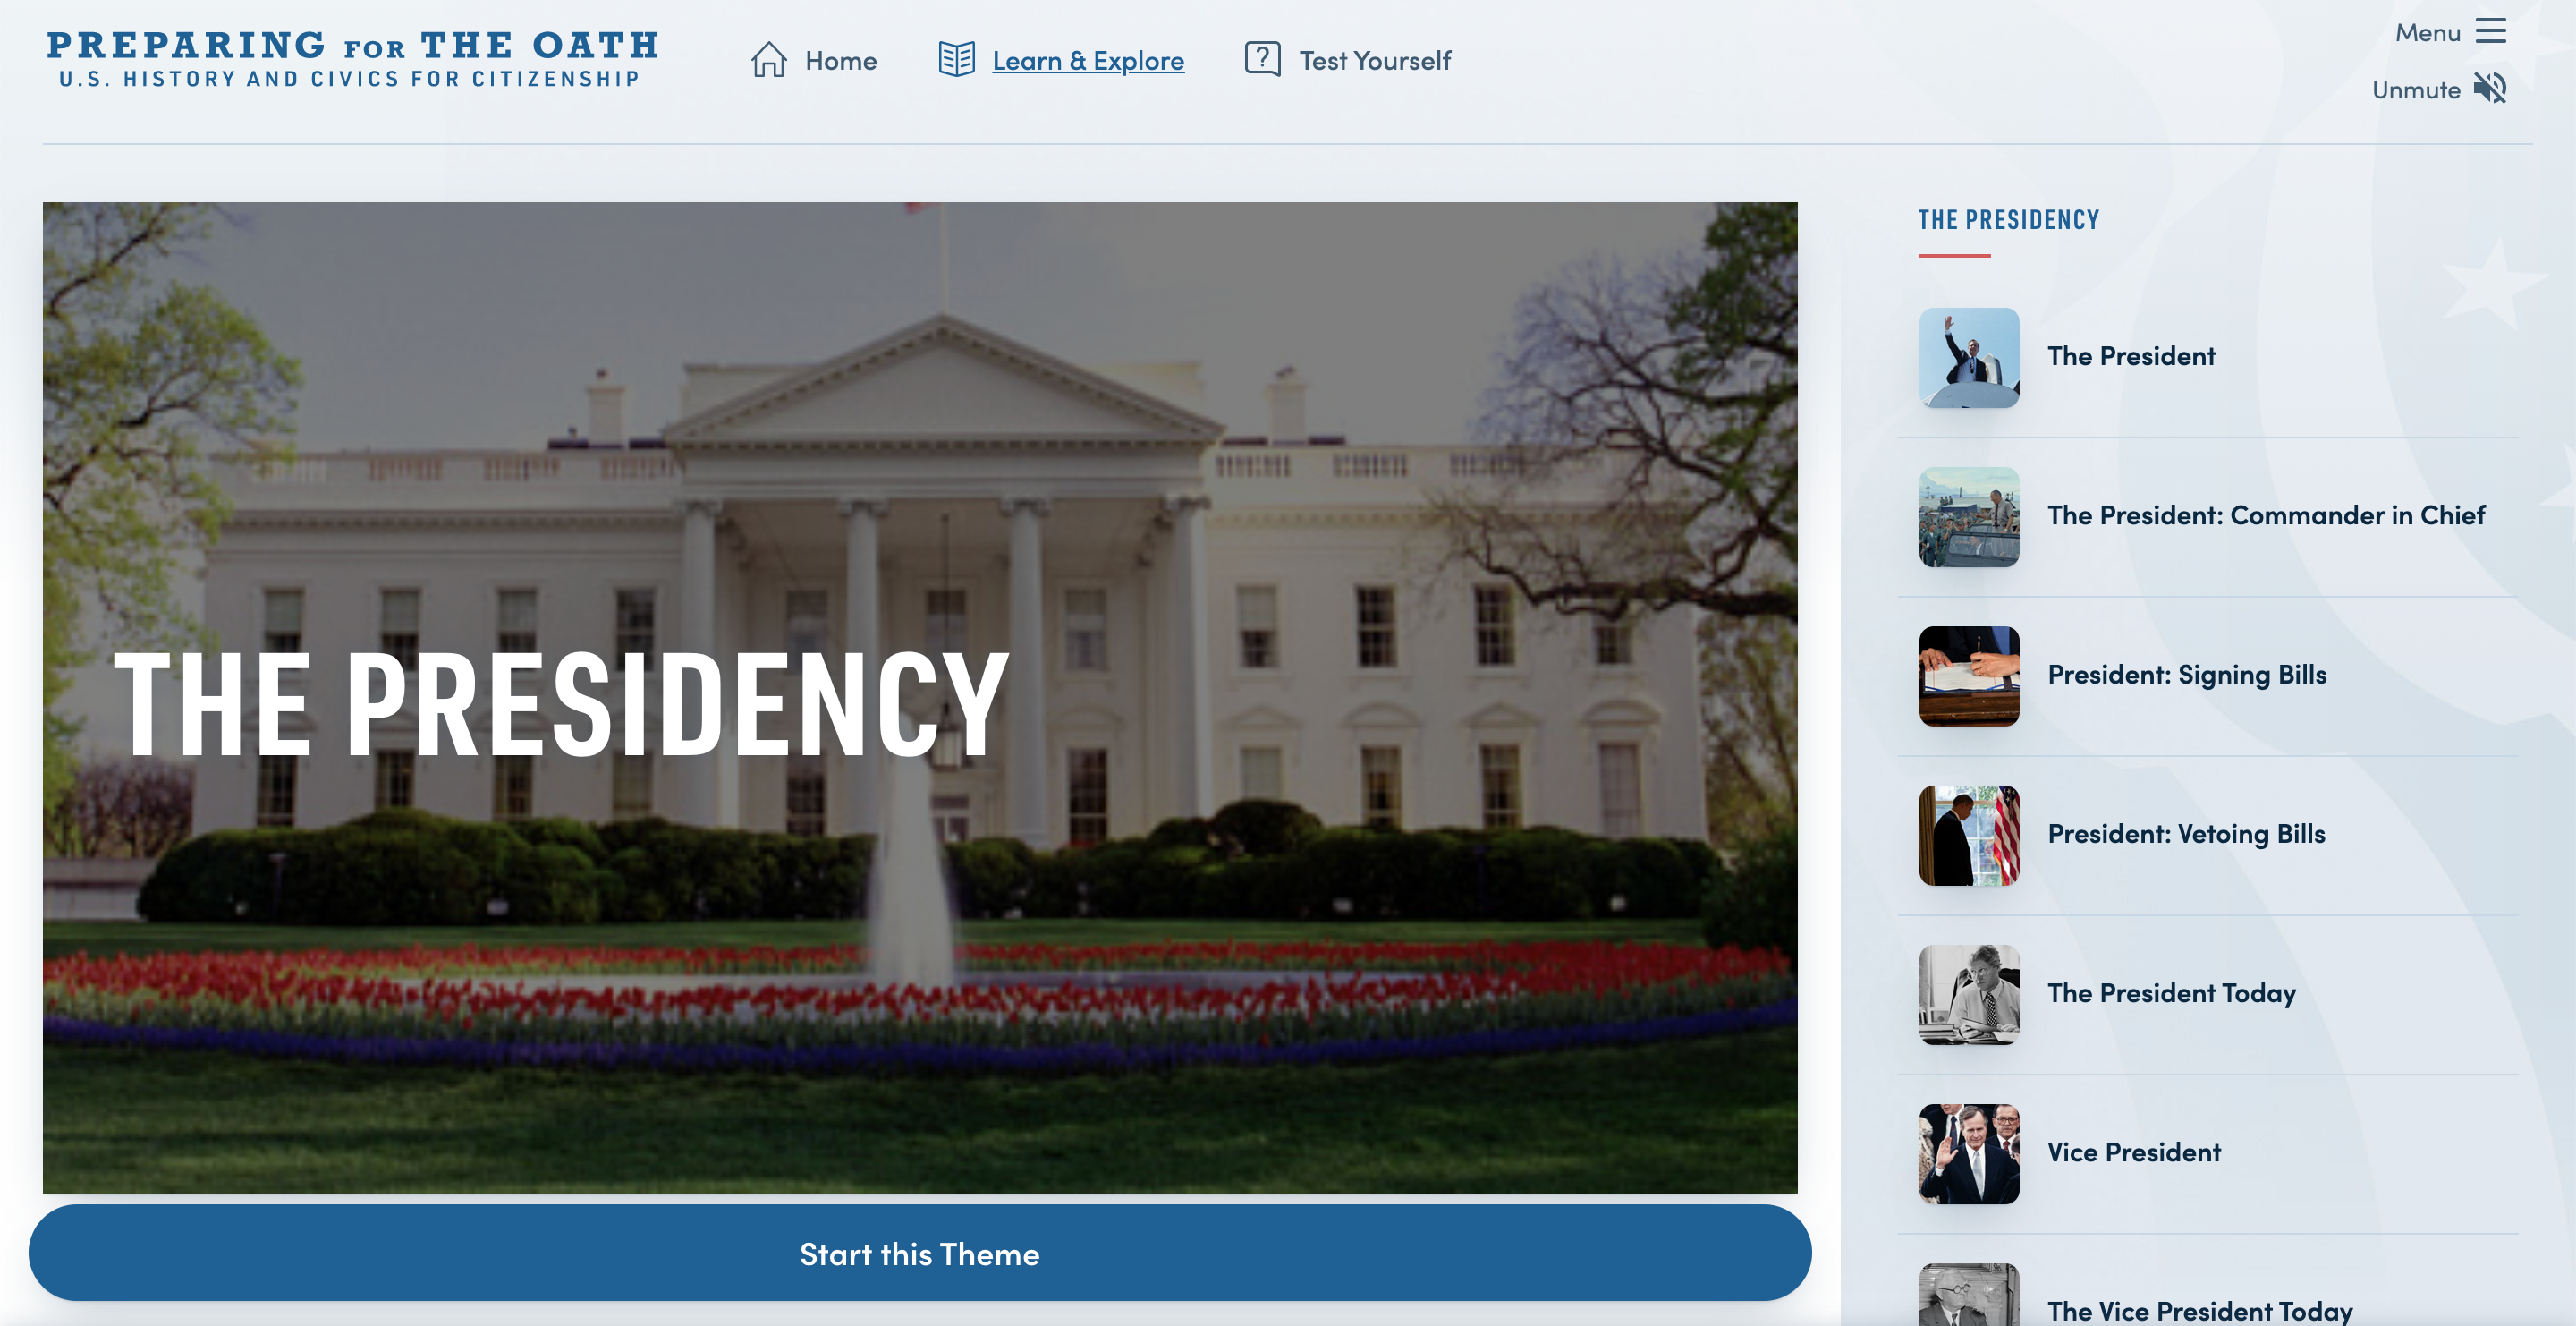 Thumbnail image of Preparing for the Oath: Presidency resource